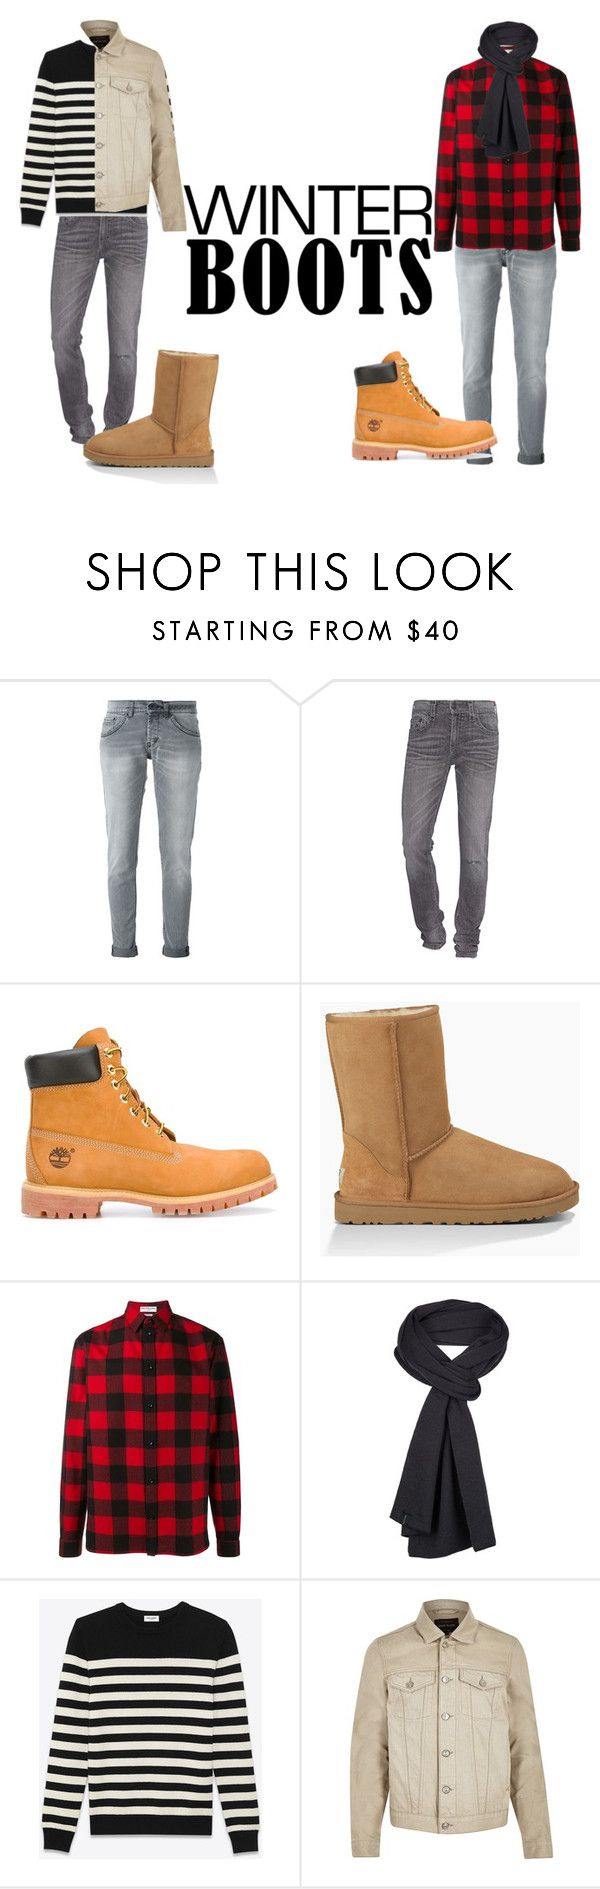 """""""Winter Boots~"""" by sconesareawesome-iggybrows on Polyvore featuring Dondup, True Religion, Timberland, UGG Australia, Balenciaga, prAna, Yves Saint Laurent, River Island, men's fashion and menswear"""